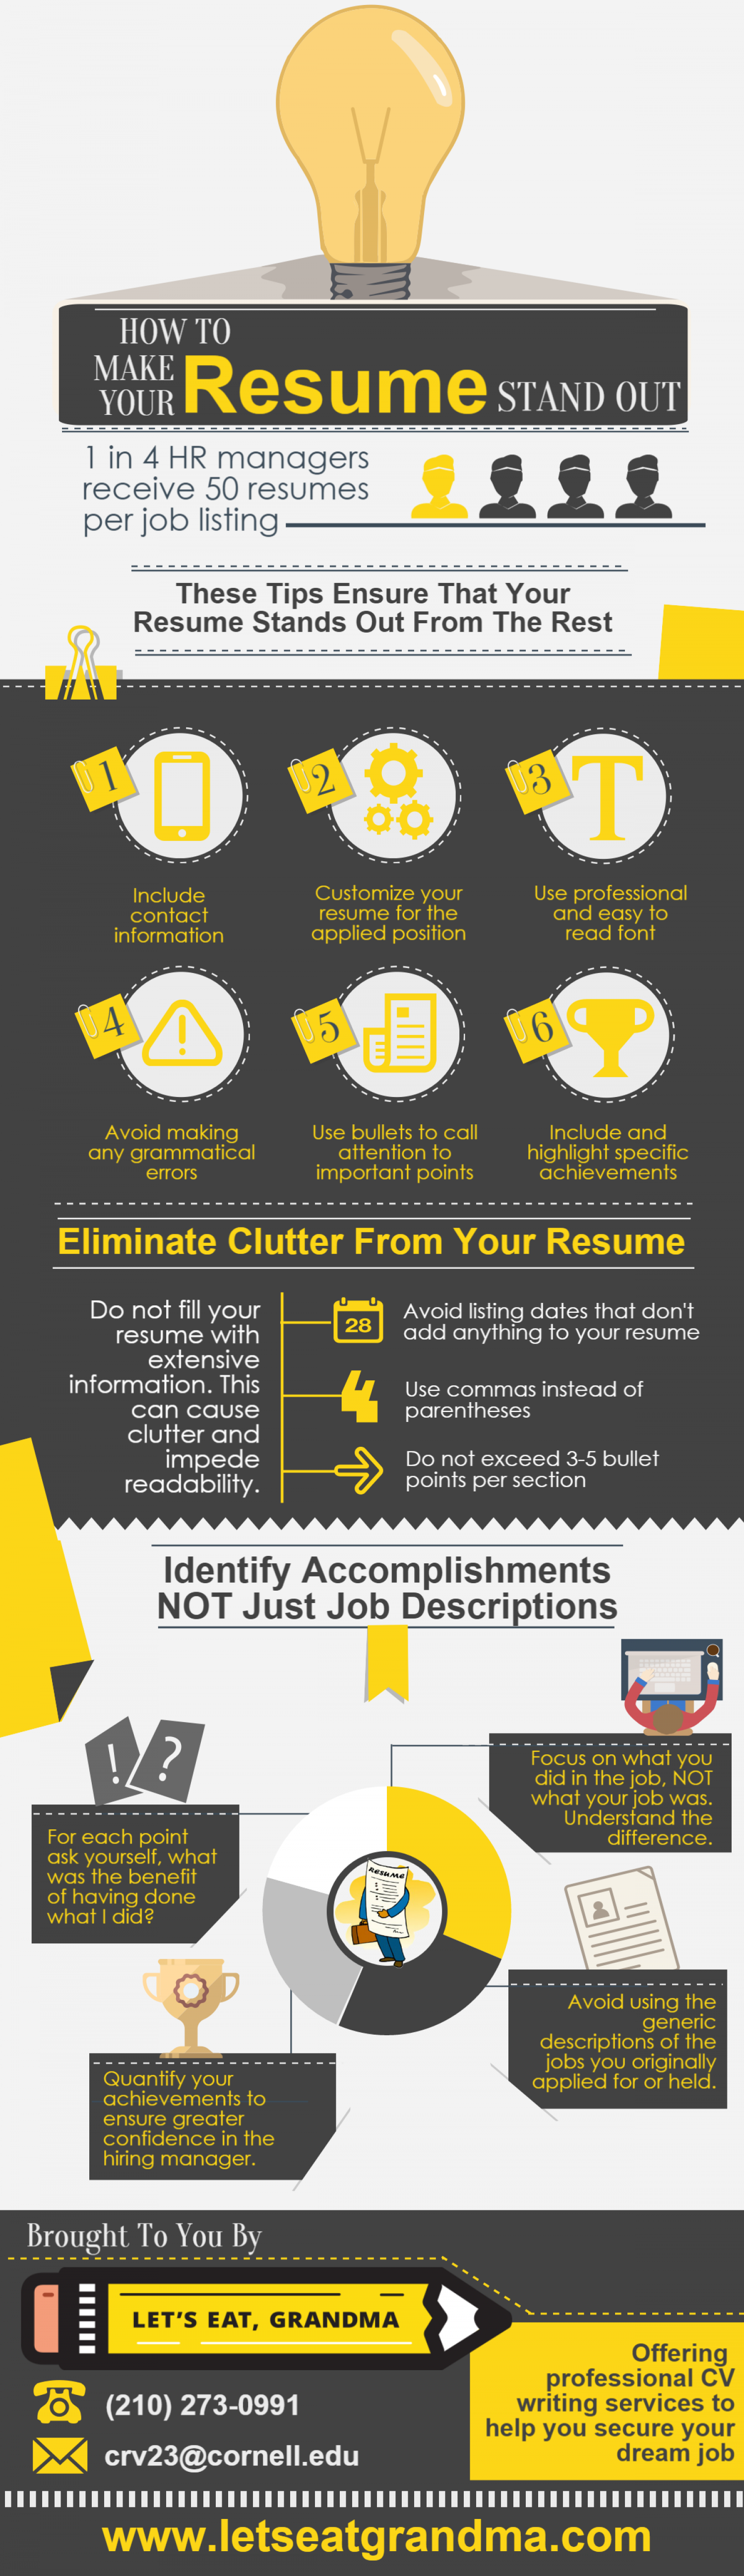 how to make a video resume%0A images about Resumes interviews career on Pinterest make your resume stand  out FV COMM HR Social